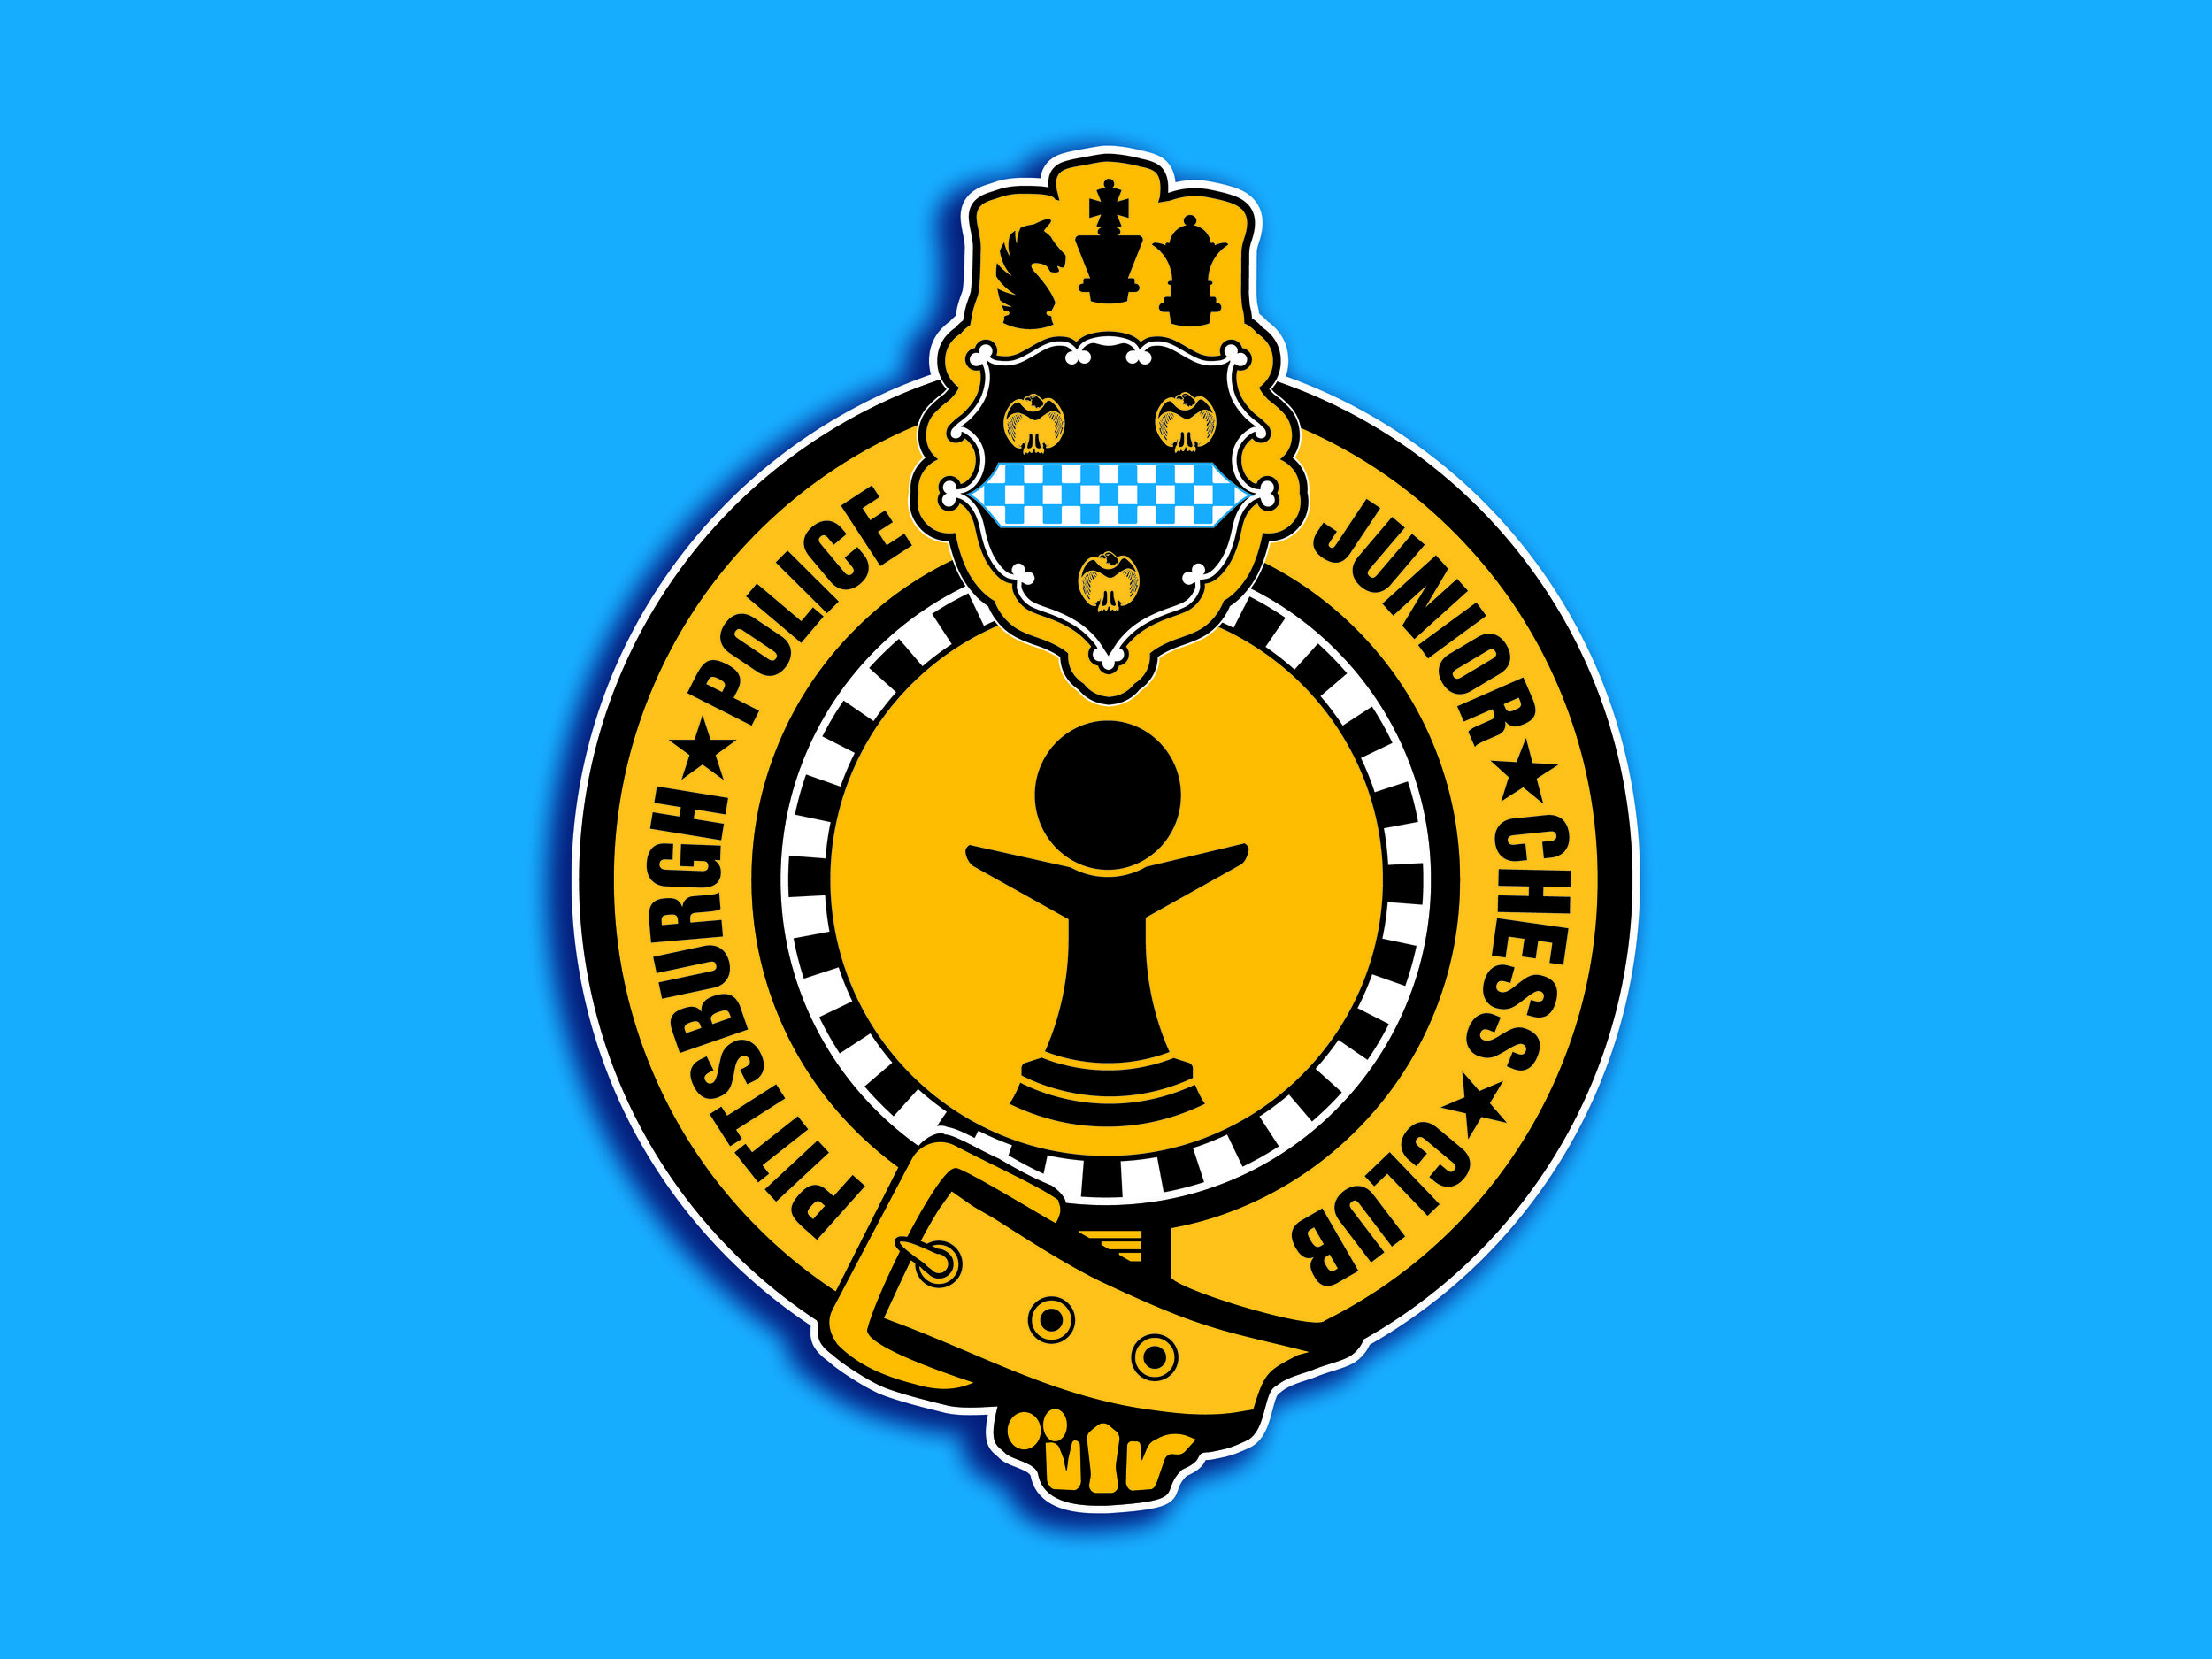 The official Pittsburgh Police Junior Chess Club logo. (I got special permission to incorporate the Pgh Police badge art into the mark).